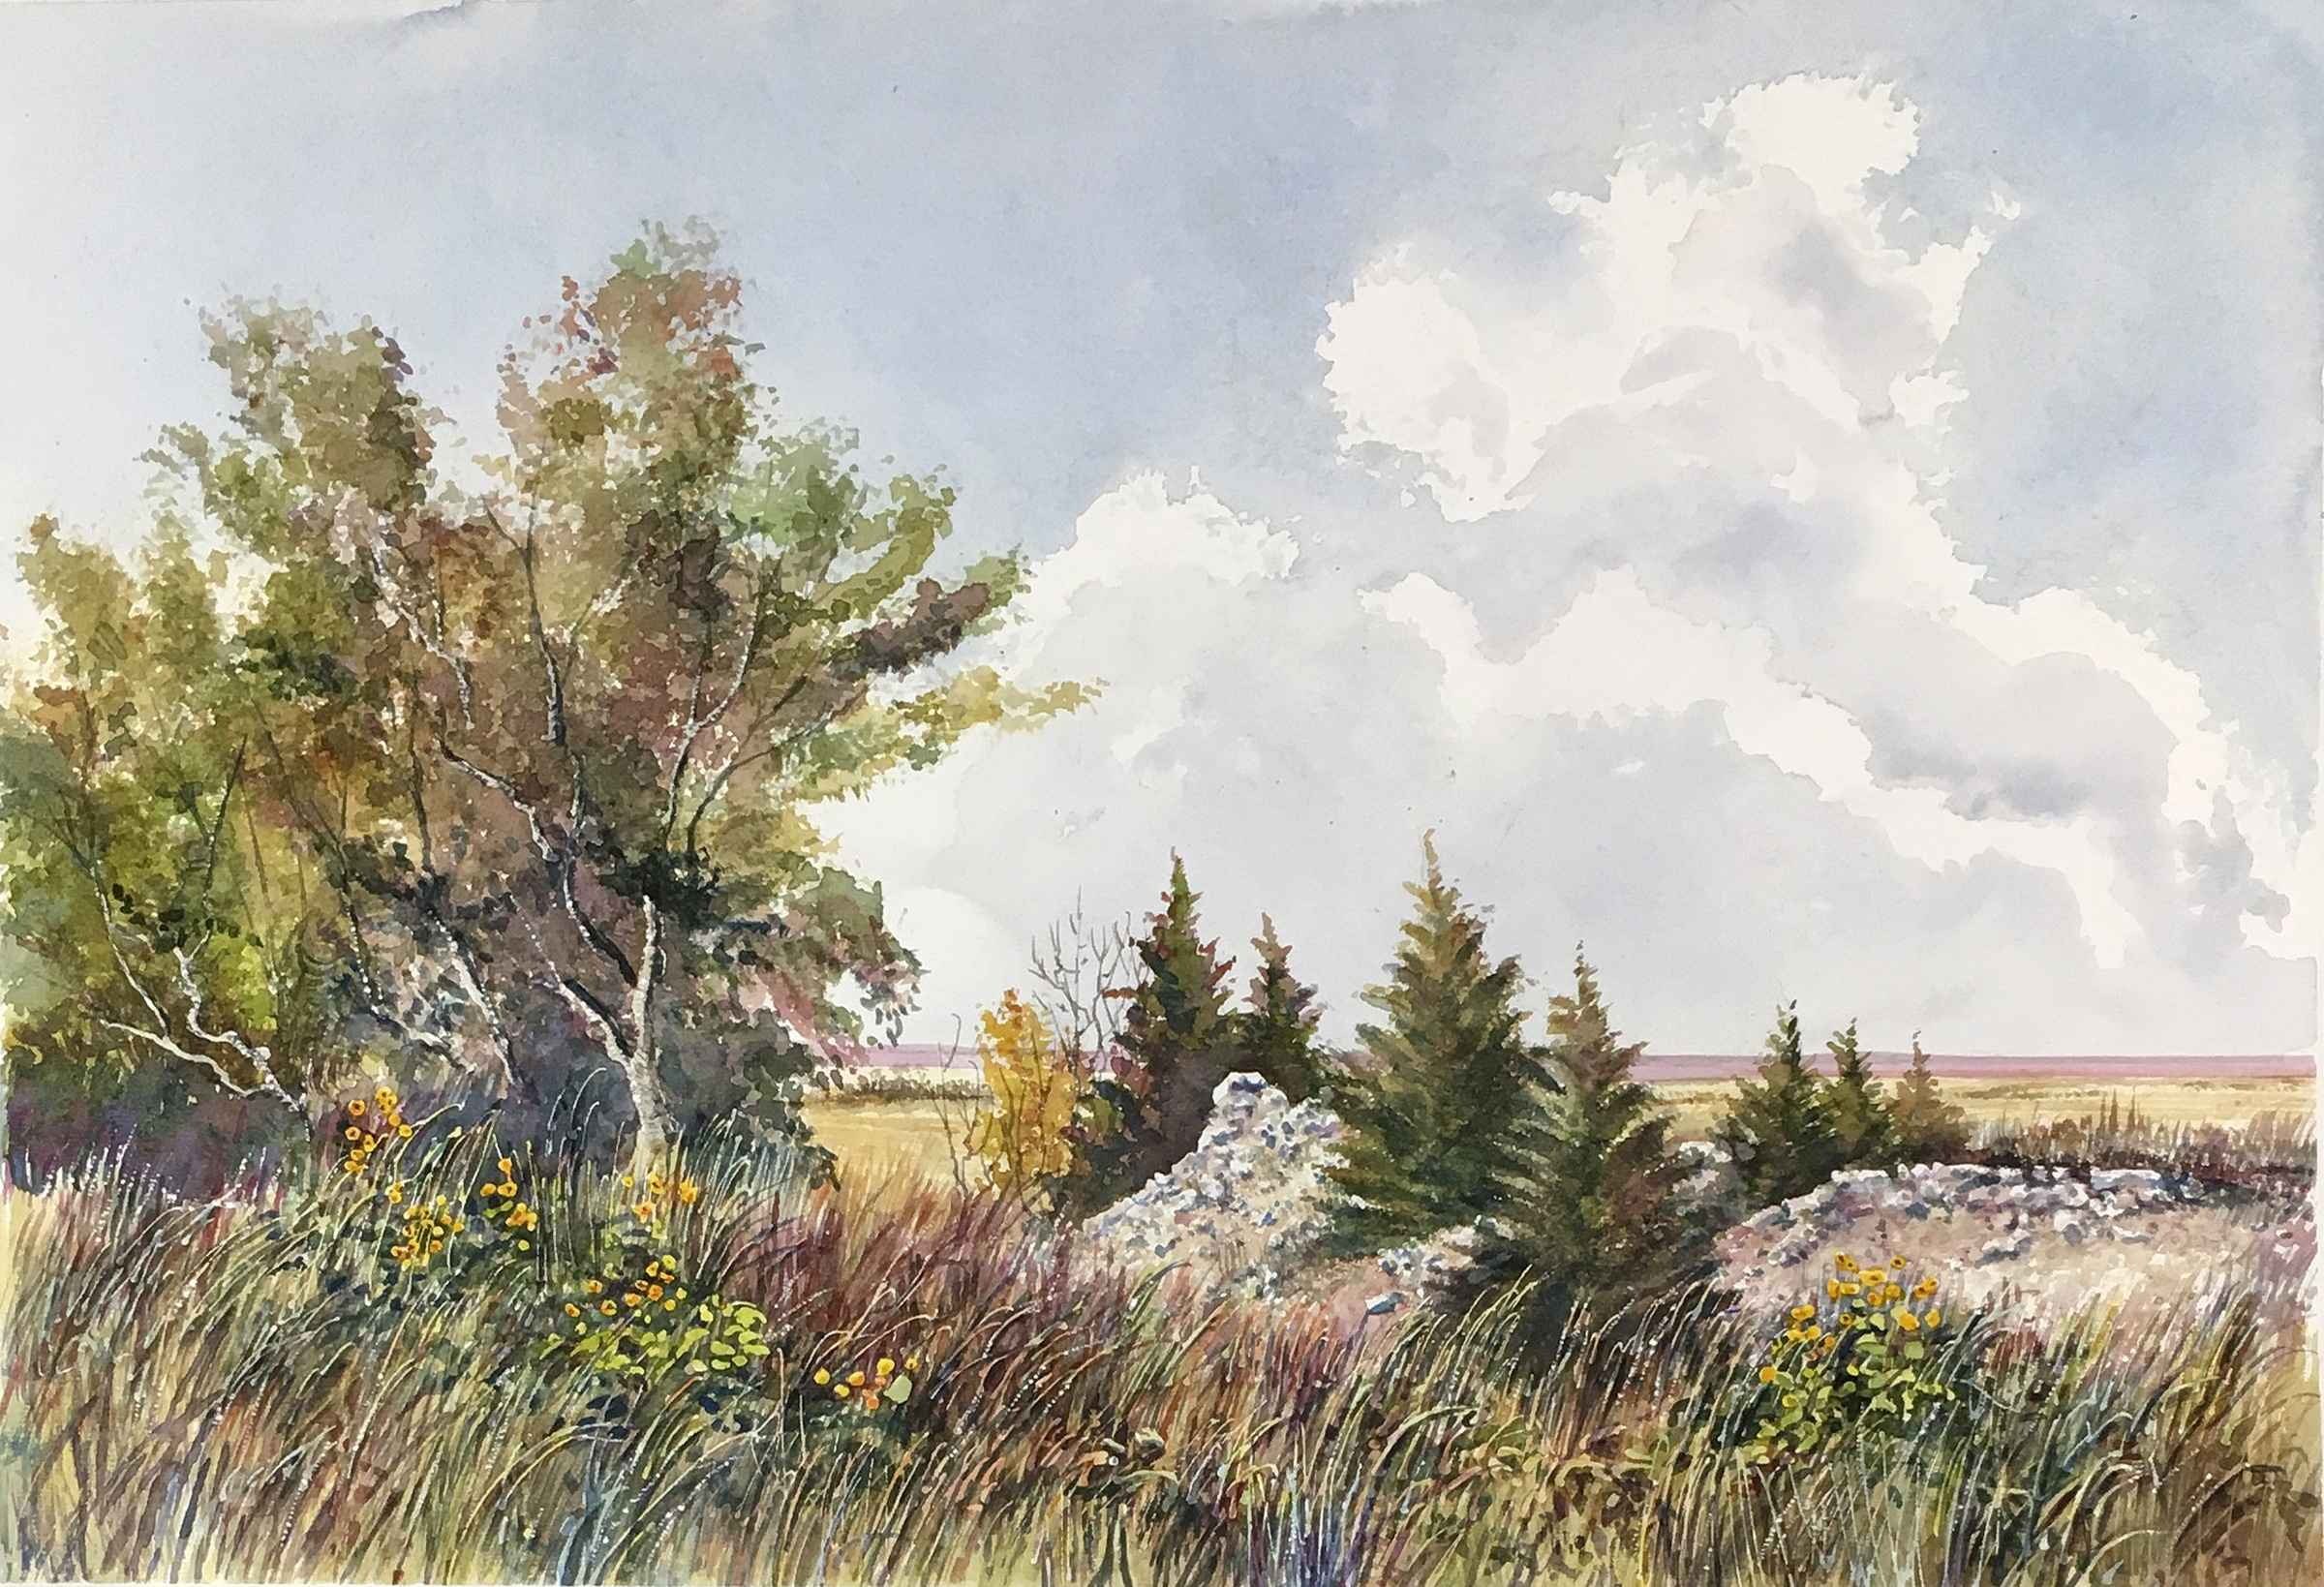 Outcrop At the Top by  Ralph Fontenot - Masterpiece Online